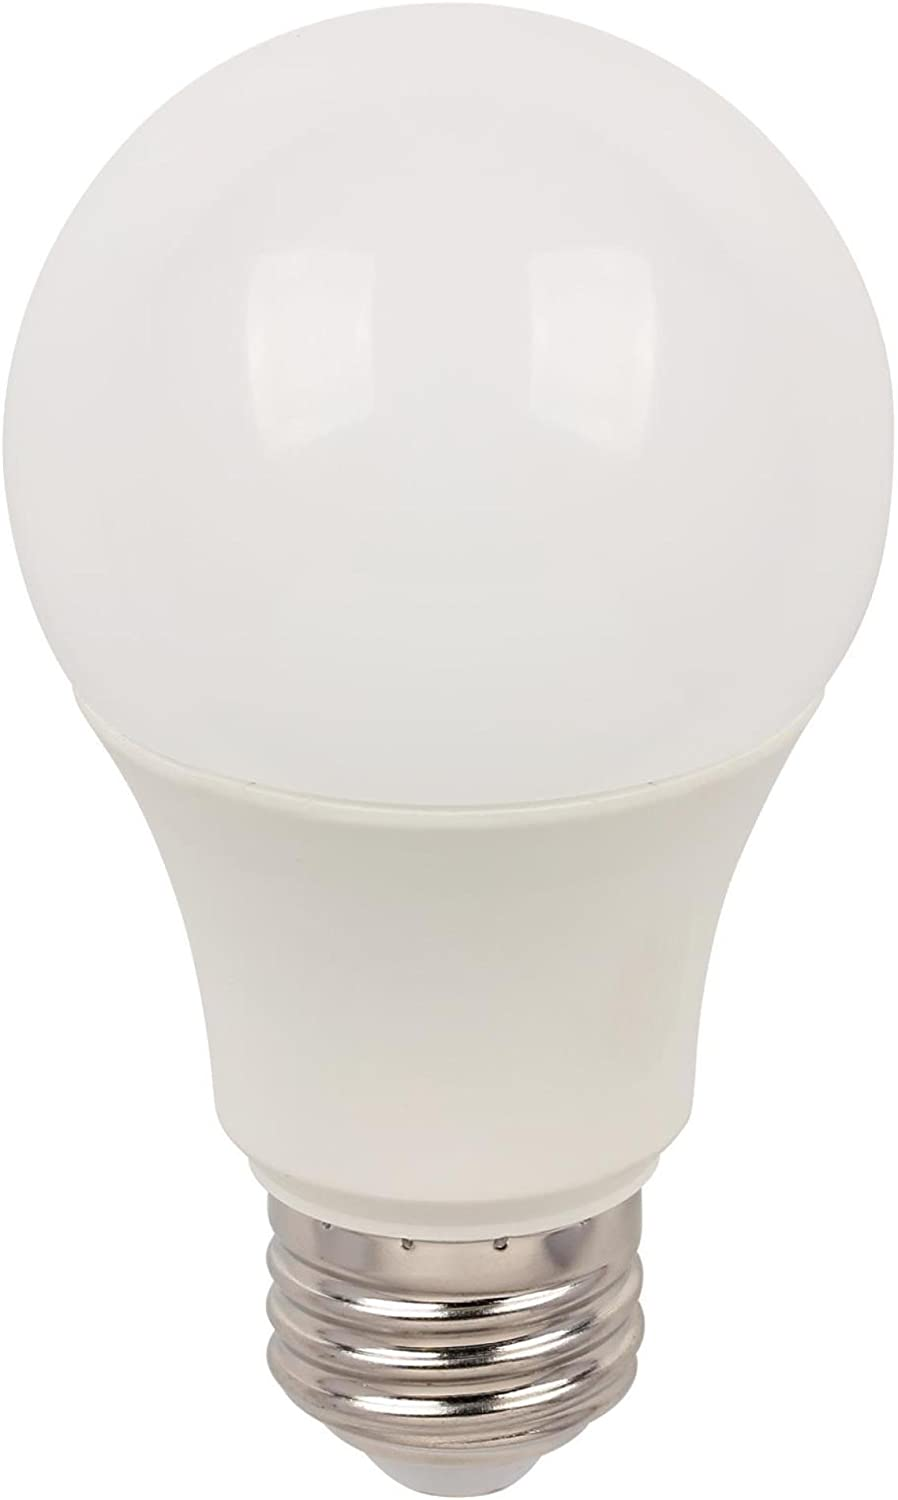 Westinghouse Lighting 5073000 40-Watt Equivalent Omni A19 Dimmable Bright White Energy Star LED Light Bulb with Medium Base Single Pack